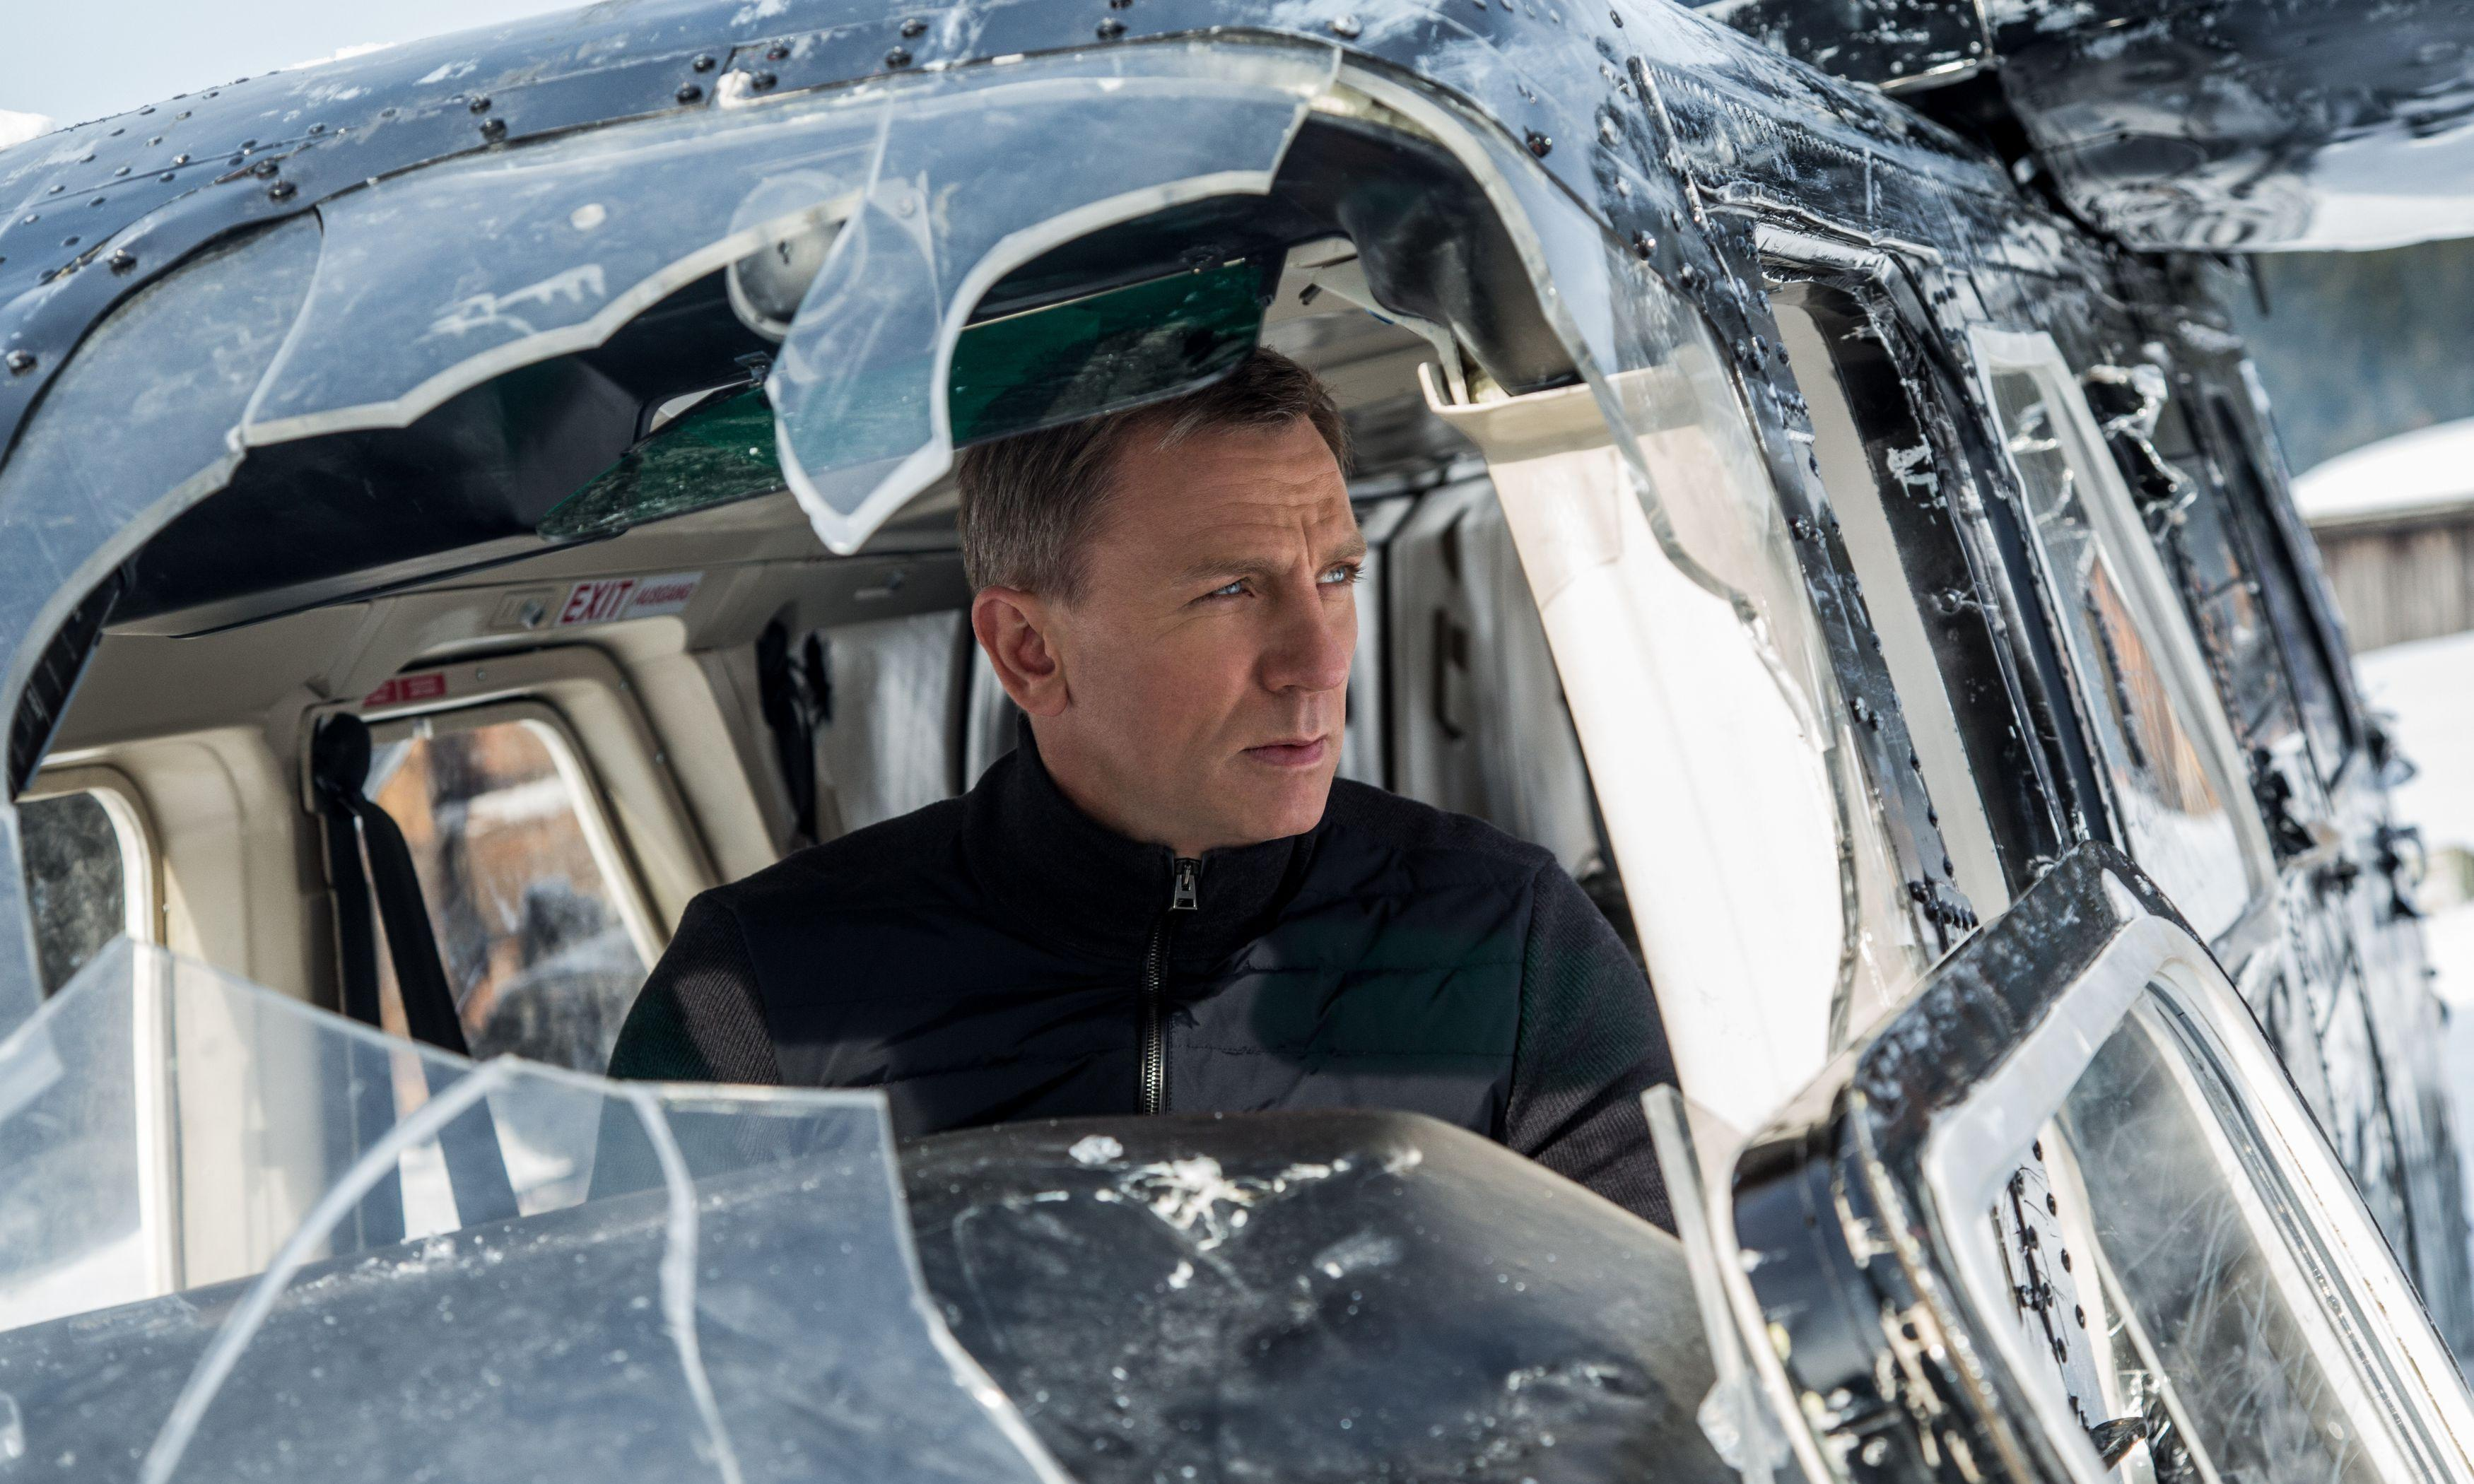 Face-palm for 007: new Bond title gives Daniel Craig flimsy send-off